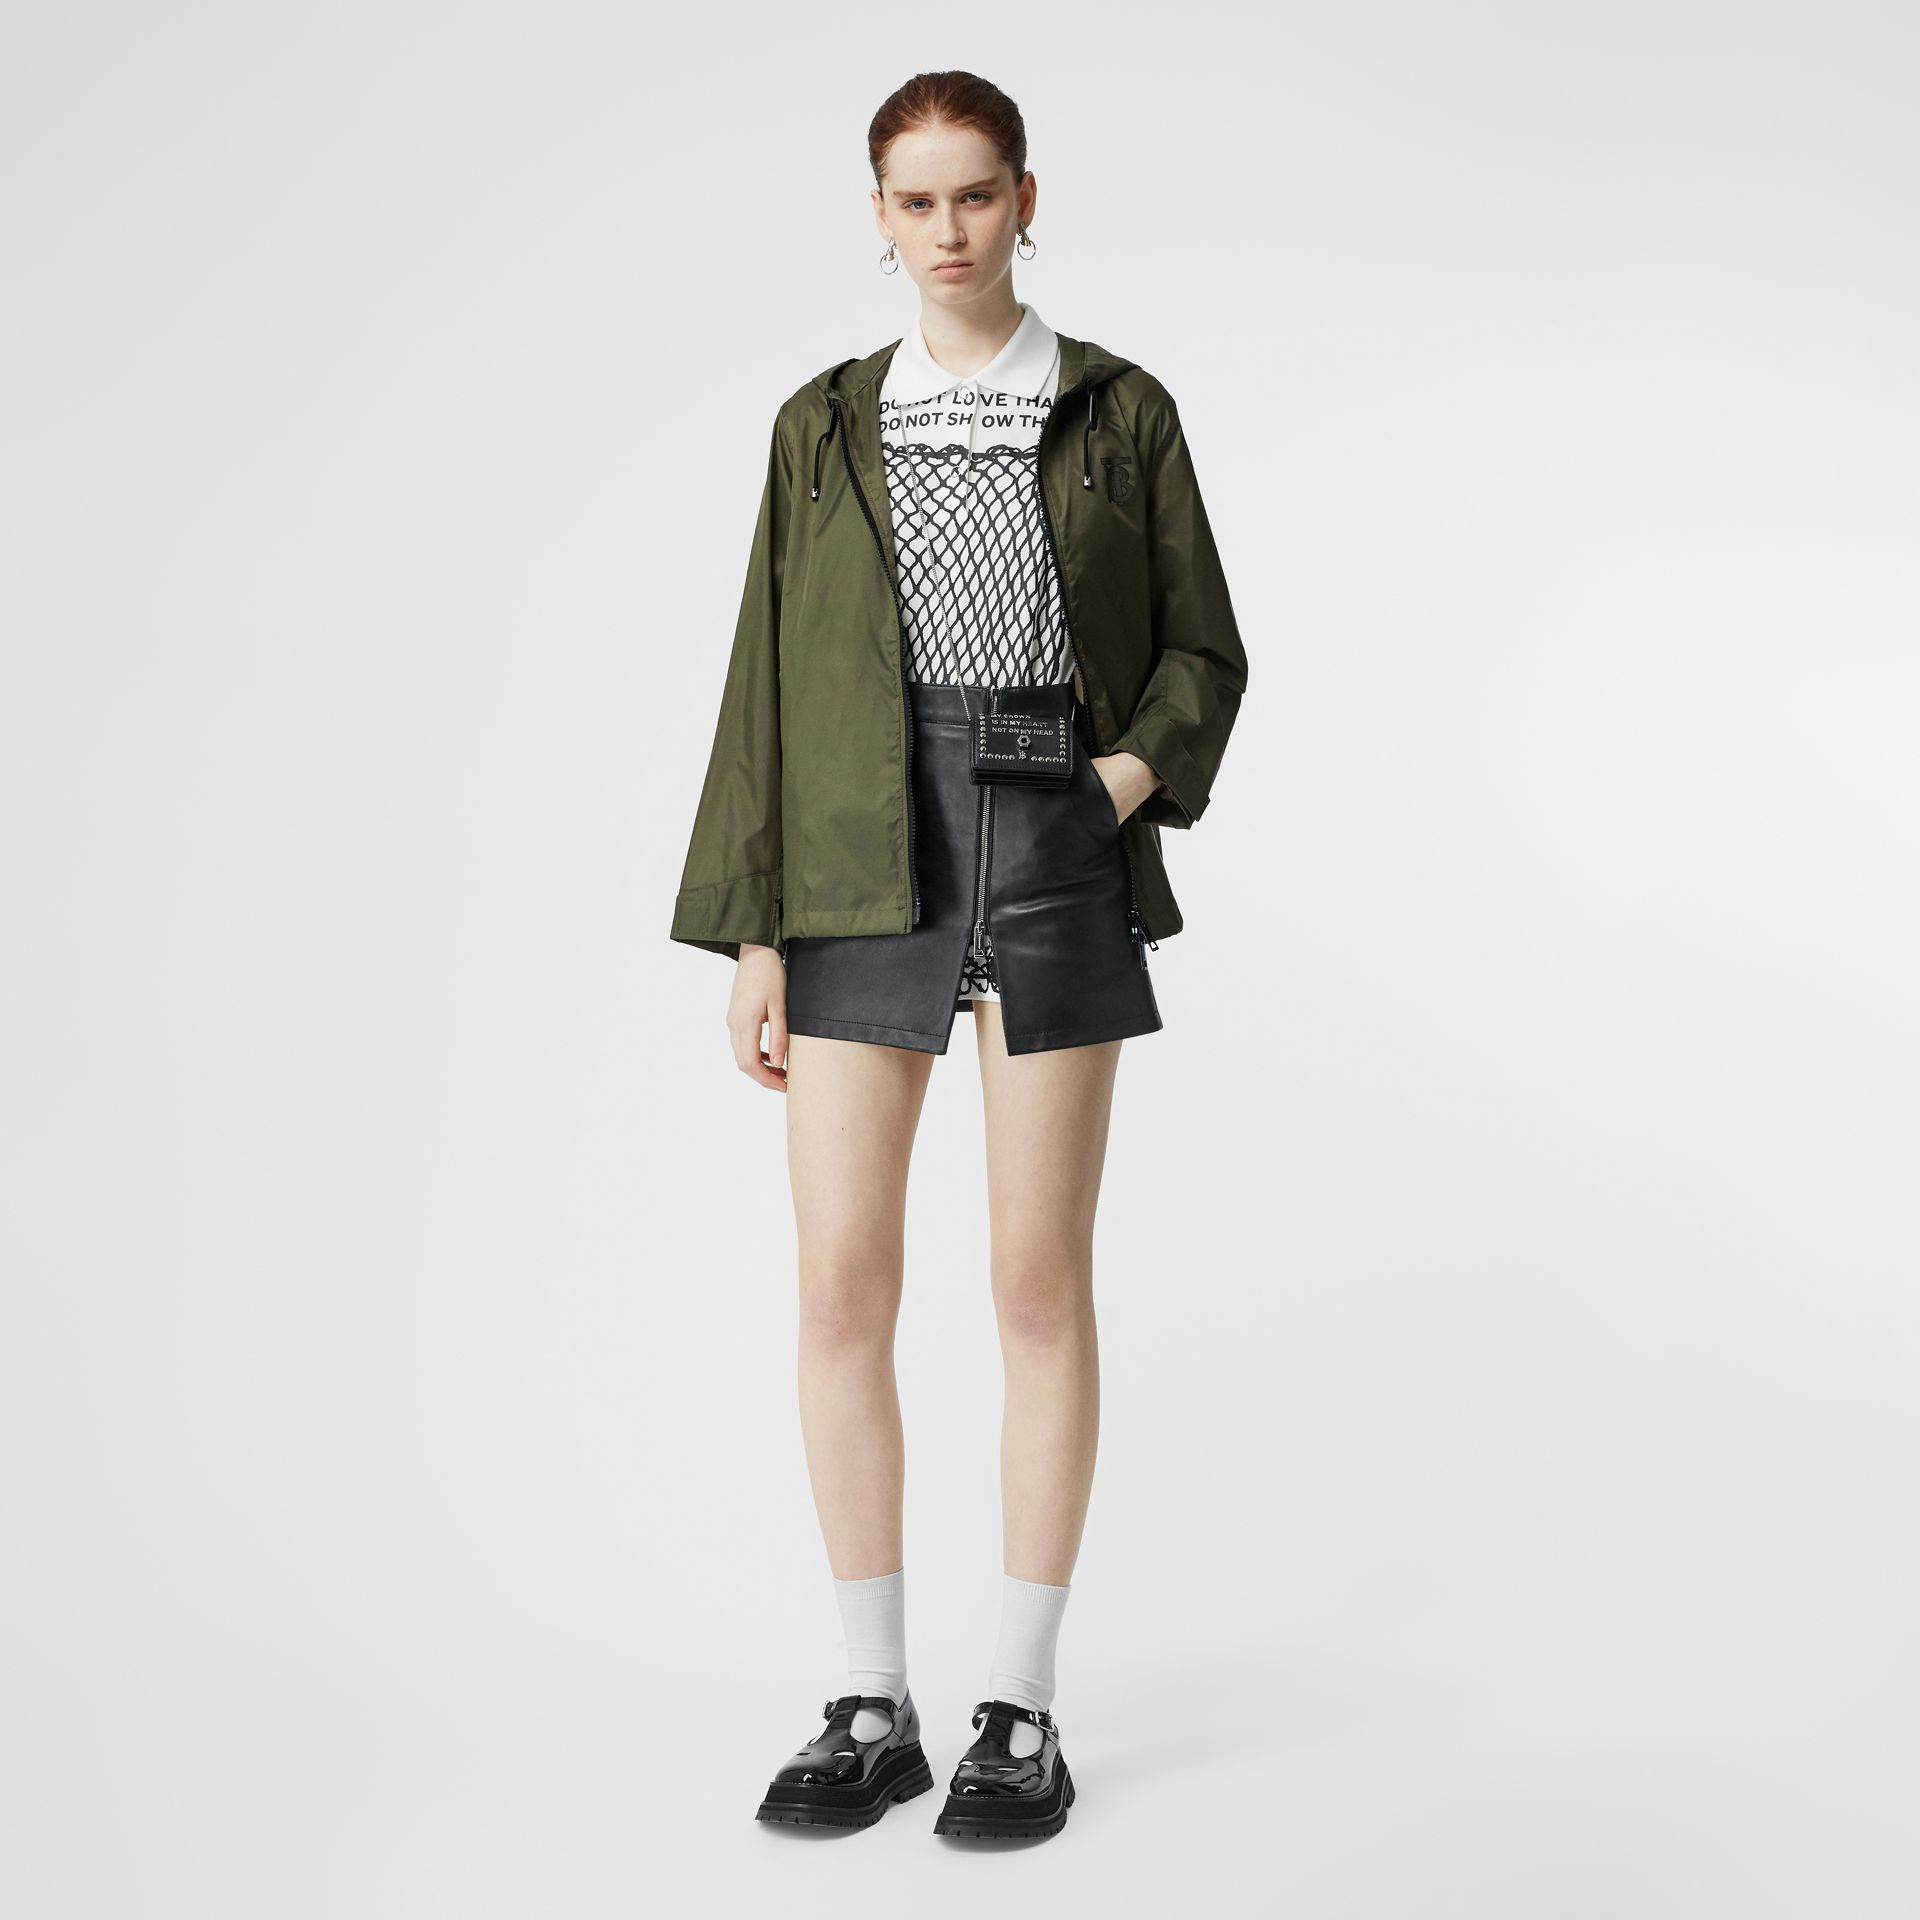 Monogram Motif Lightweight Hooded Jacket in Light Olive - Women | Burberry United States - gallery image 5